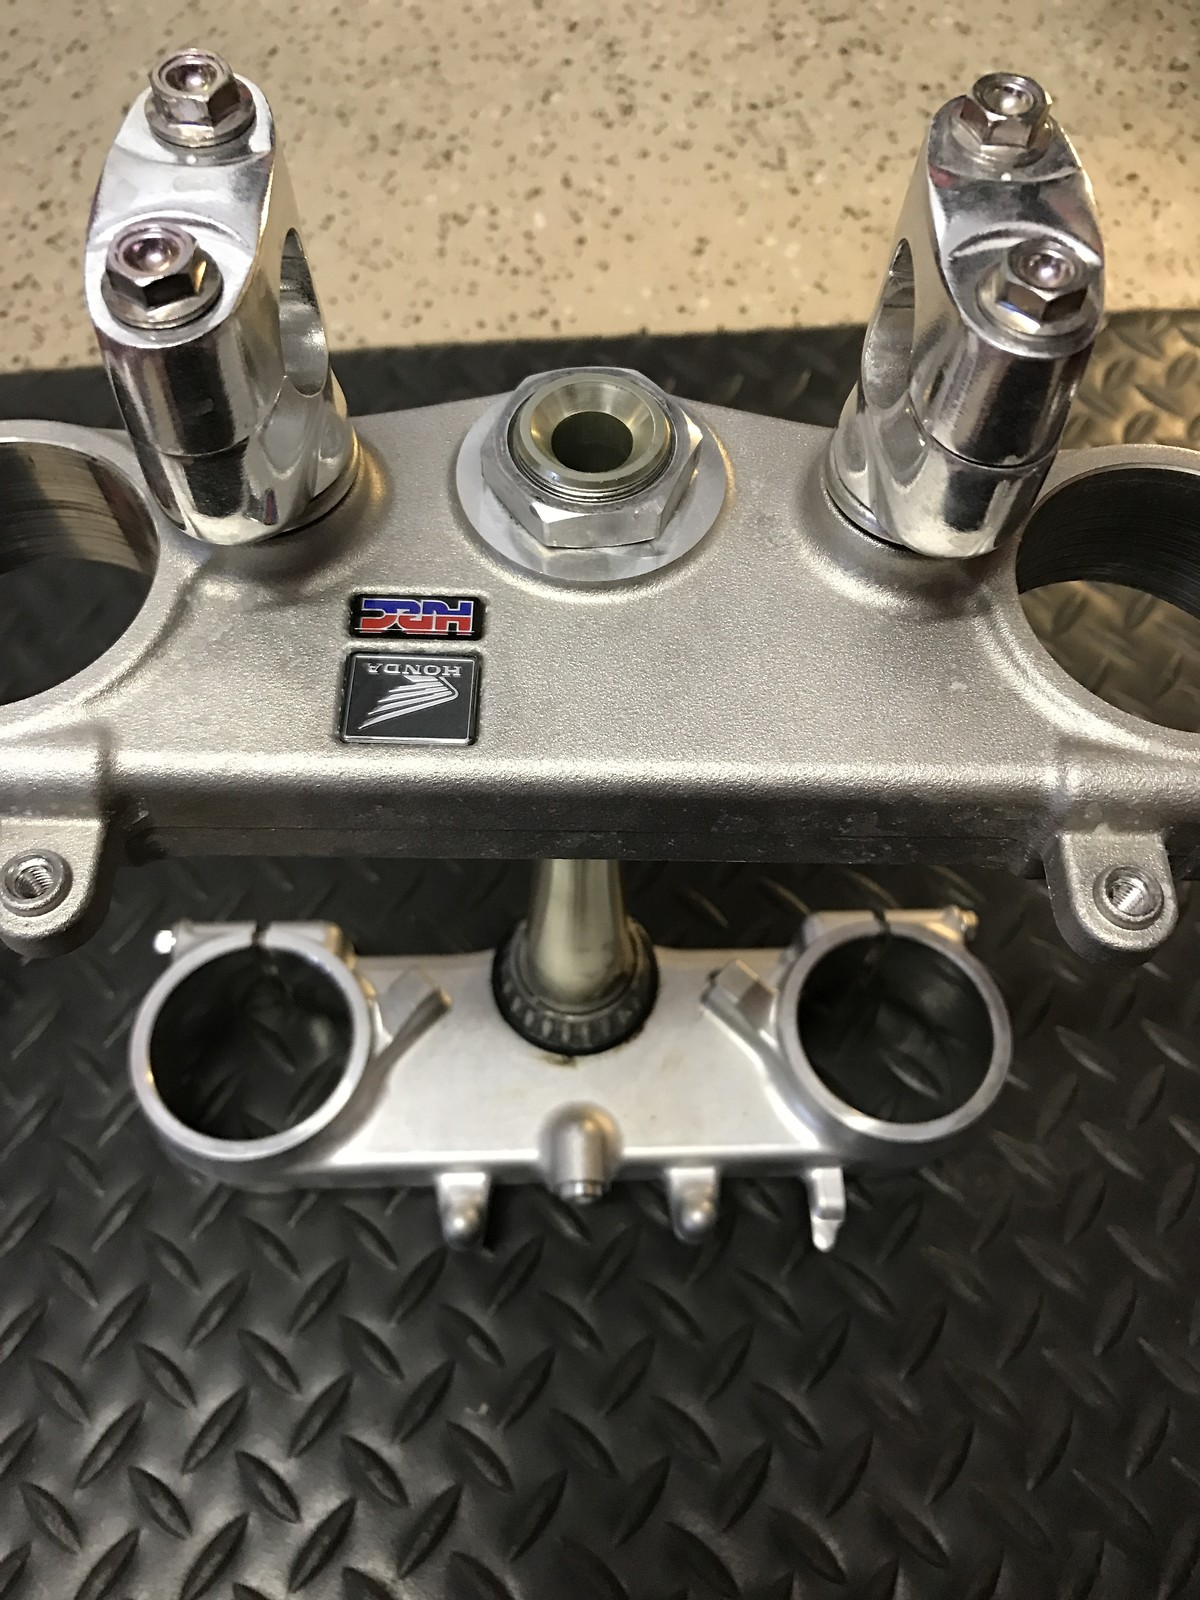 2017 CRF450 OEM triple clamps like new SOLD - For Sale/Bazaar